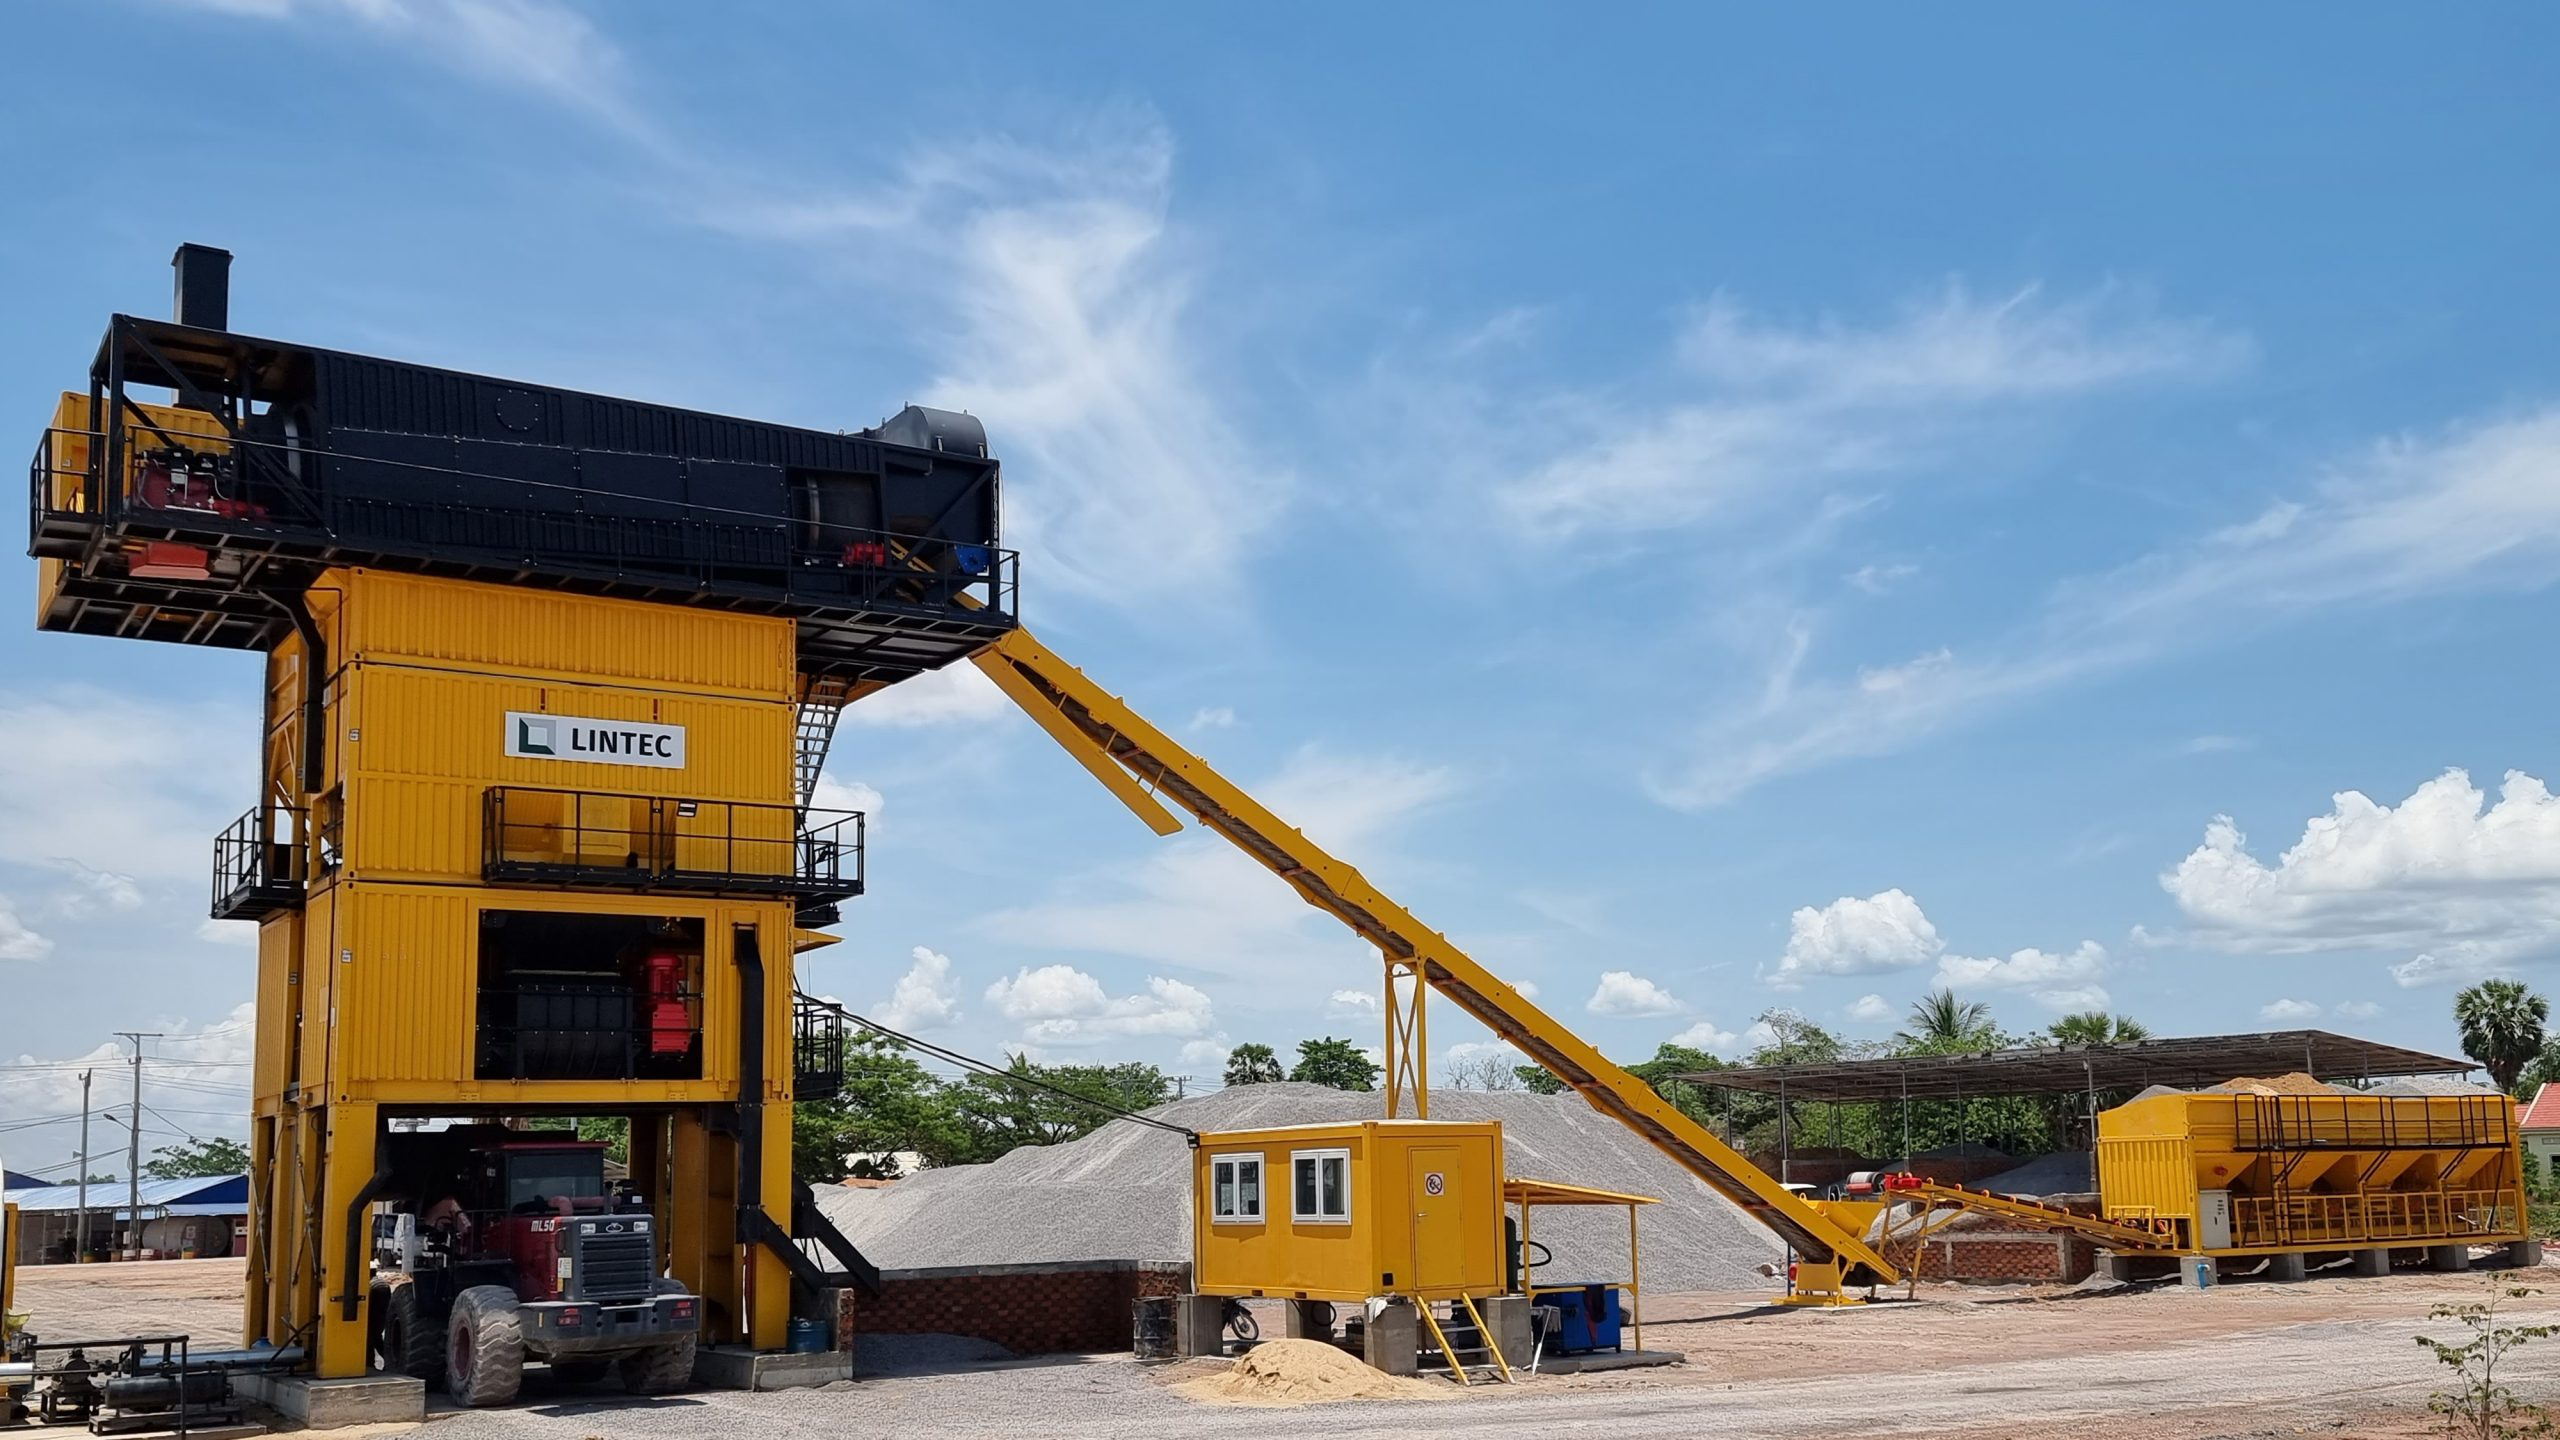 Lintec & Linnhoff asphalt plants pave the way for a more prosperous future in Cambodia